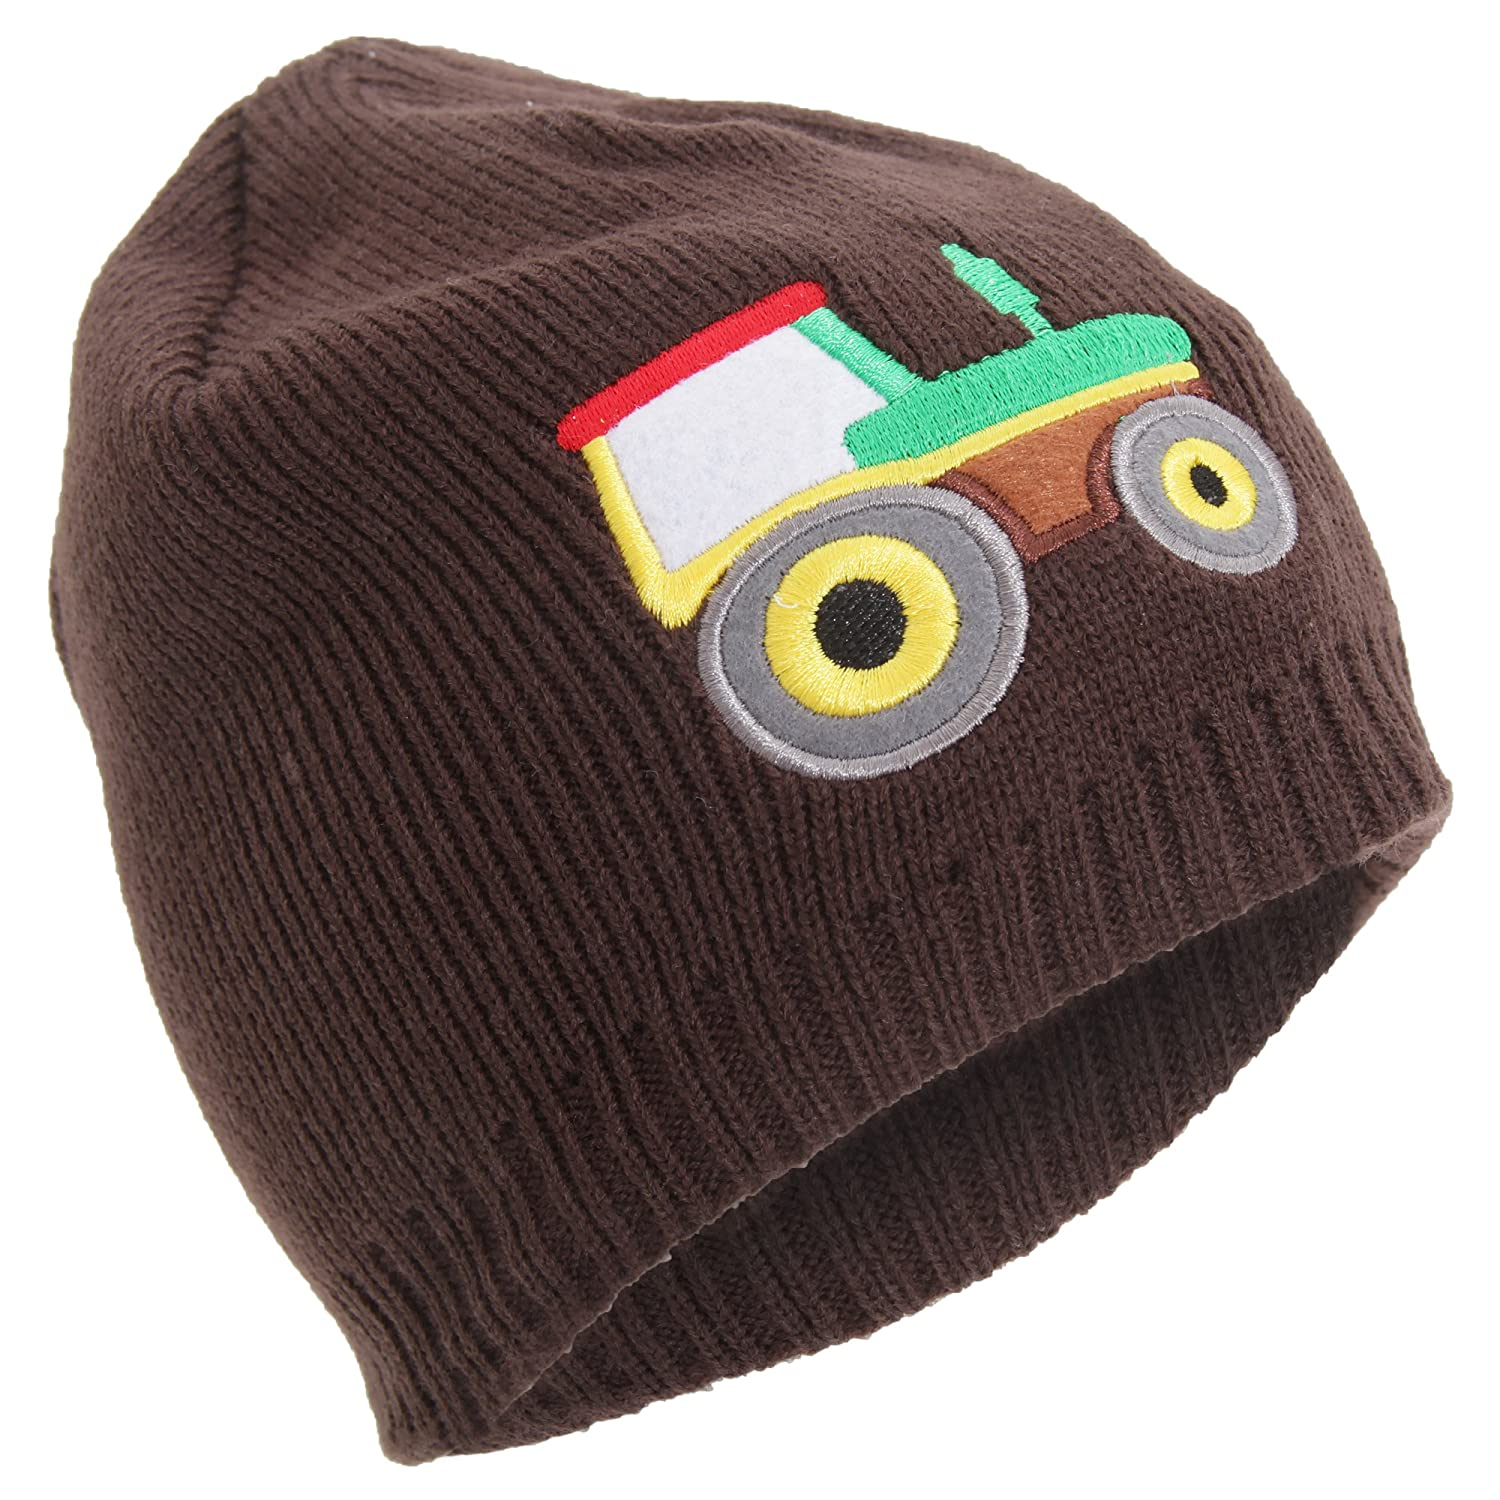 Universal Textiles Childrens/Boys Embroidered Fleece Lined Winter Beanie Hat UTHA533_2